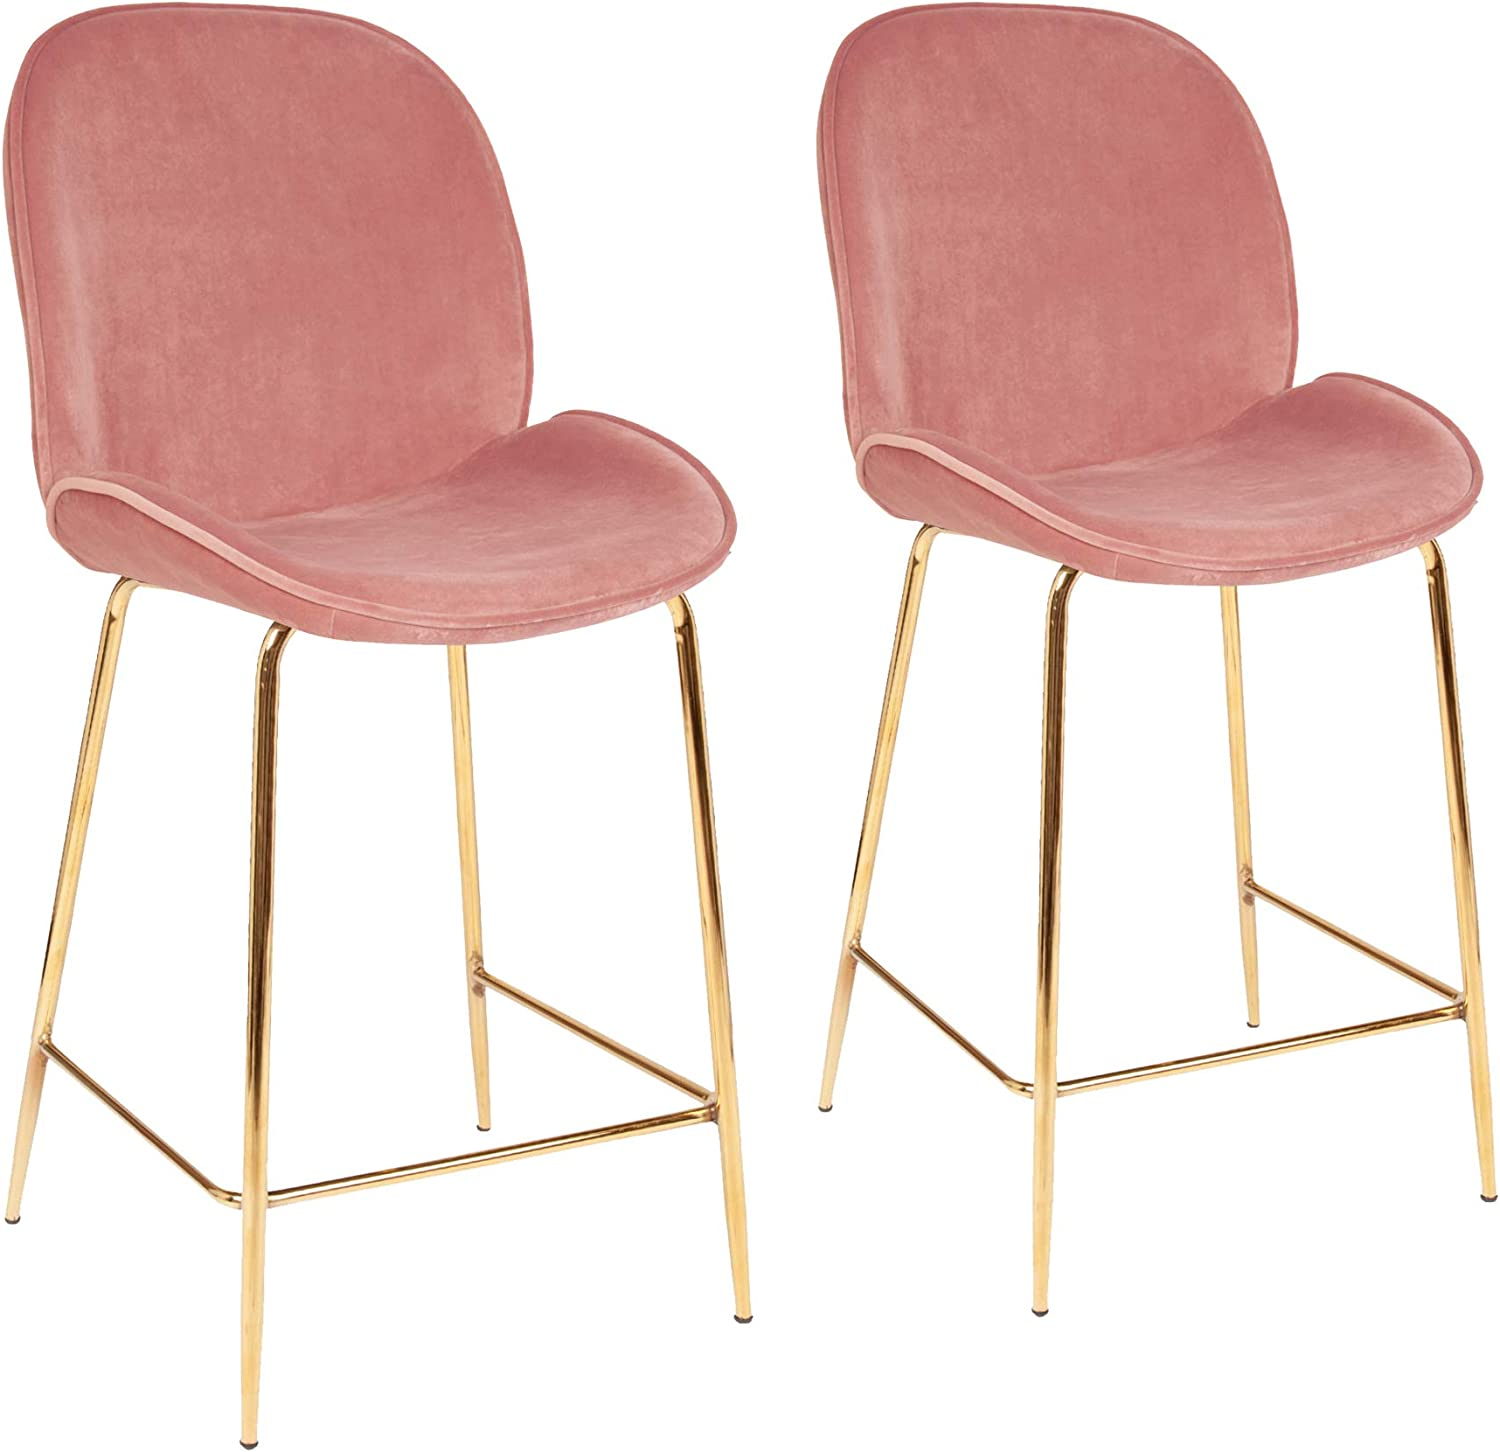 Set of 9 Pink Velvet Bar Chairs Bar Stools,Seat Height 9cm for ...